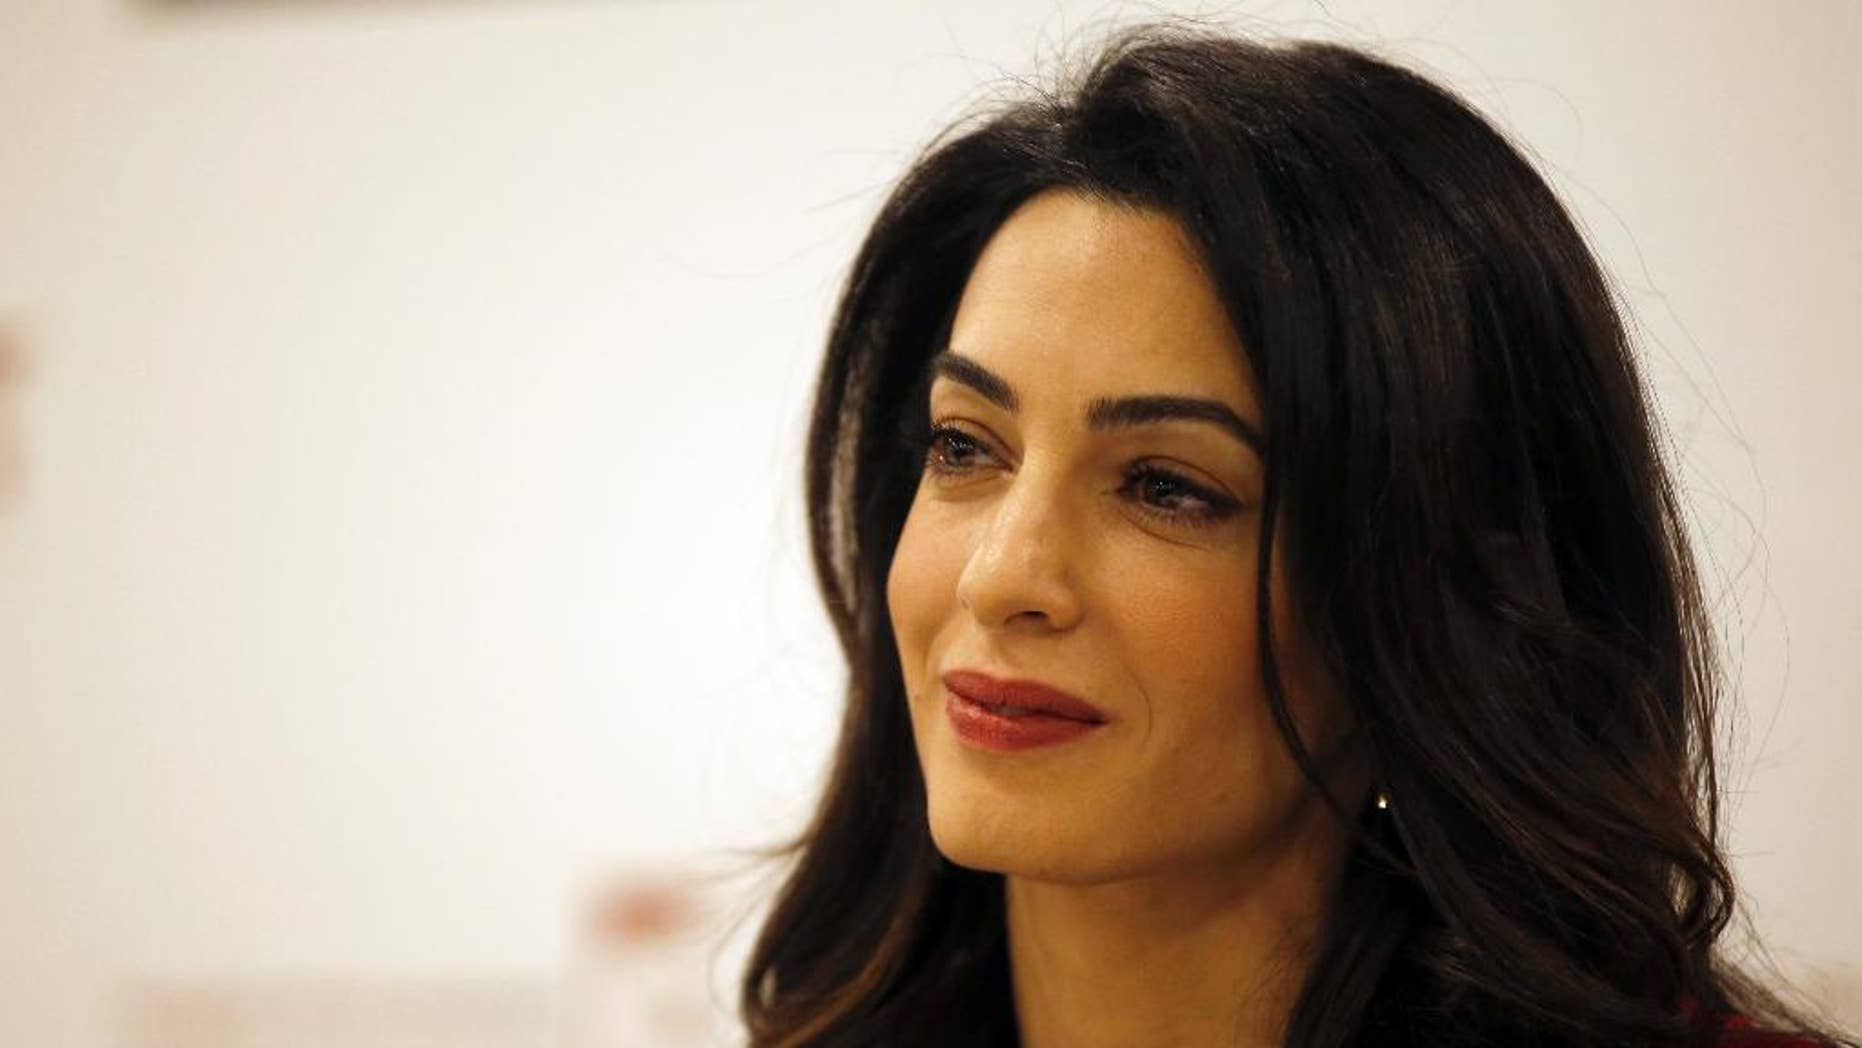 "FILE - In this Jan. 25, 2016, file photo, British lawyer Amal Clooney attends a press conference with former Maldives president Mohamed Nasheed in London. Clooney  is pushing for the United Nations to investigate and prosecute Islamic State commanders for genocide. Clooney wants IS leaders tried over the killings. The British lawyer appeared on NBC's ""Today"" show in an interview broadcast Monday, Sept. 19, 2016, alongside 23-year-old Nadia Murad, a Yazidi woman who escaped after being captured by IS in 2014. (AP Photo/Alastair Grant, File)"